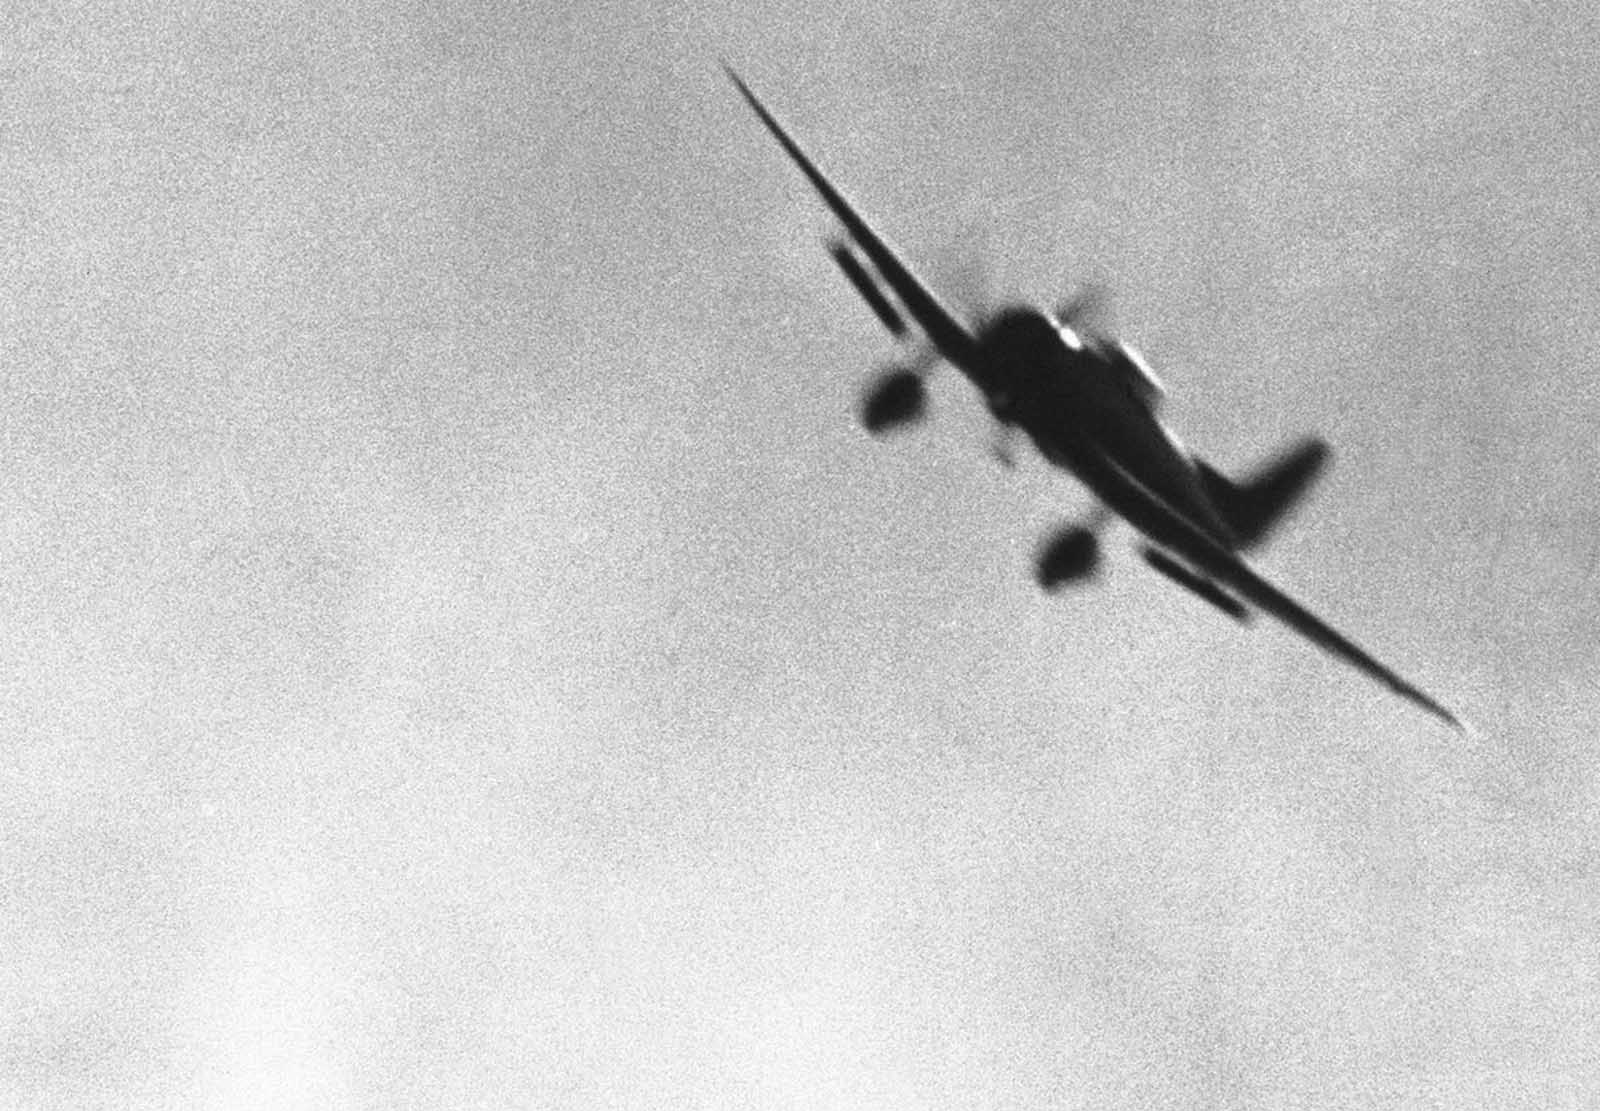 A Japanese bomber, its diving flaps down, was photographed by a U.S. Navy photographer as the plane approached its Pearl Harbor objective on December 7.